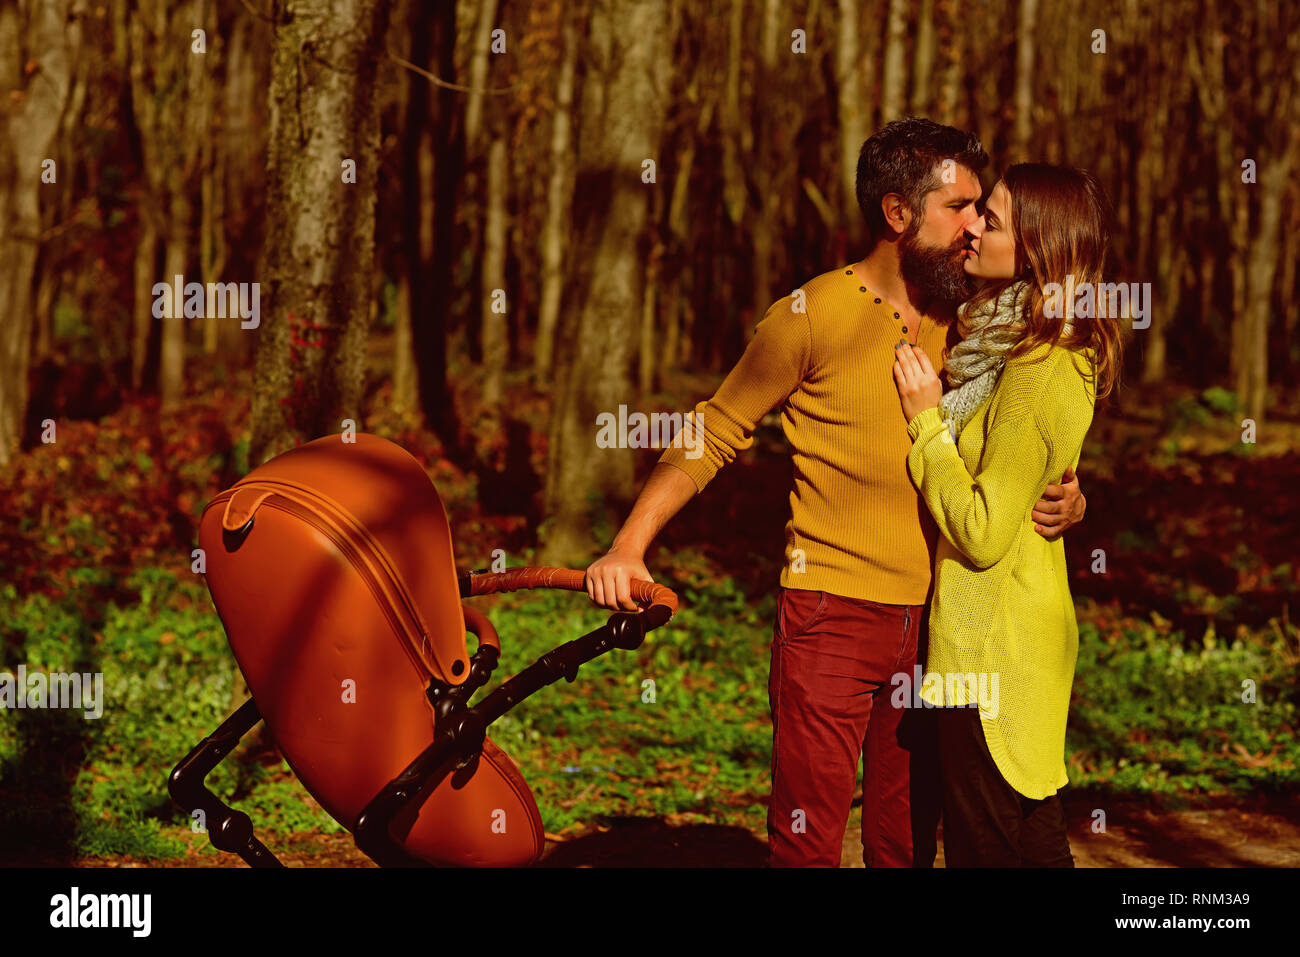 Romantic couple kiss and cuddle in park on spring day. Romantic getaway. Love has no limits - Stock Image